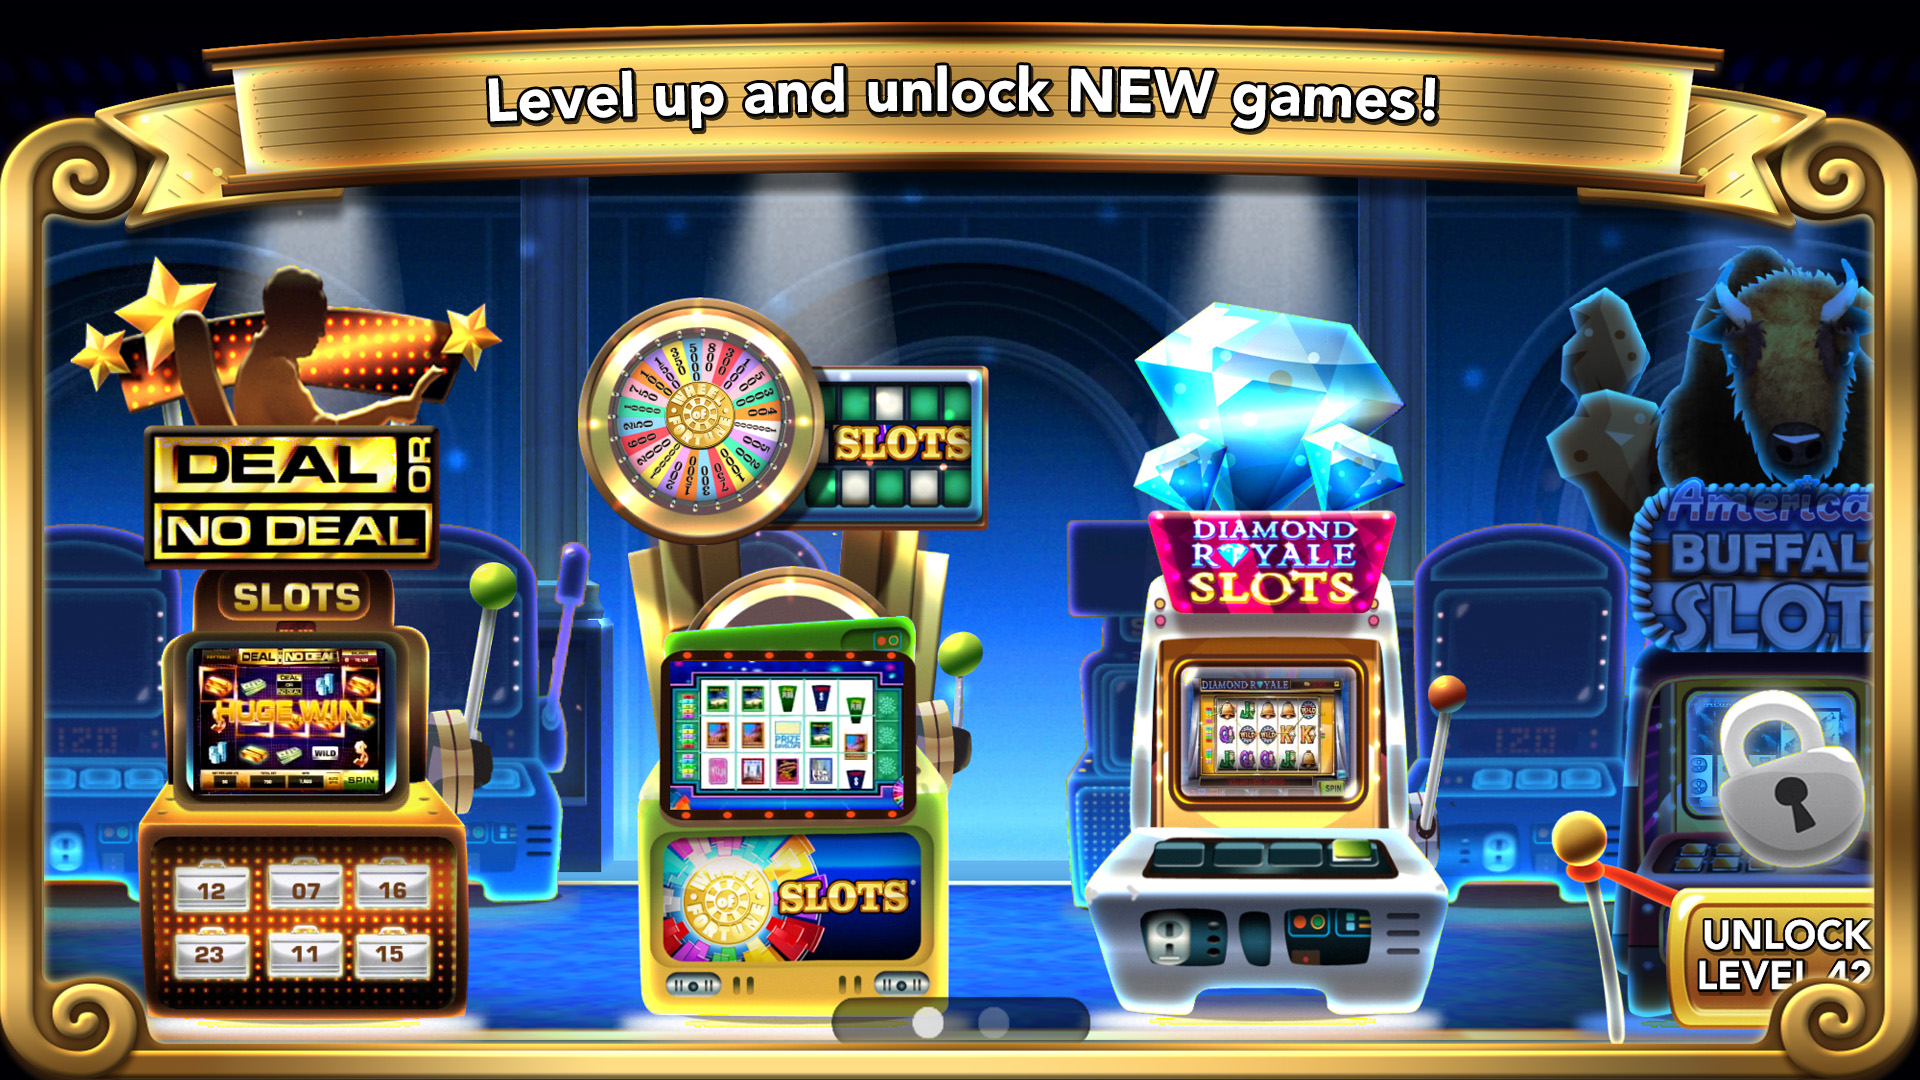 Deal no deal slot machine free definition gamble